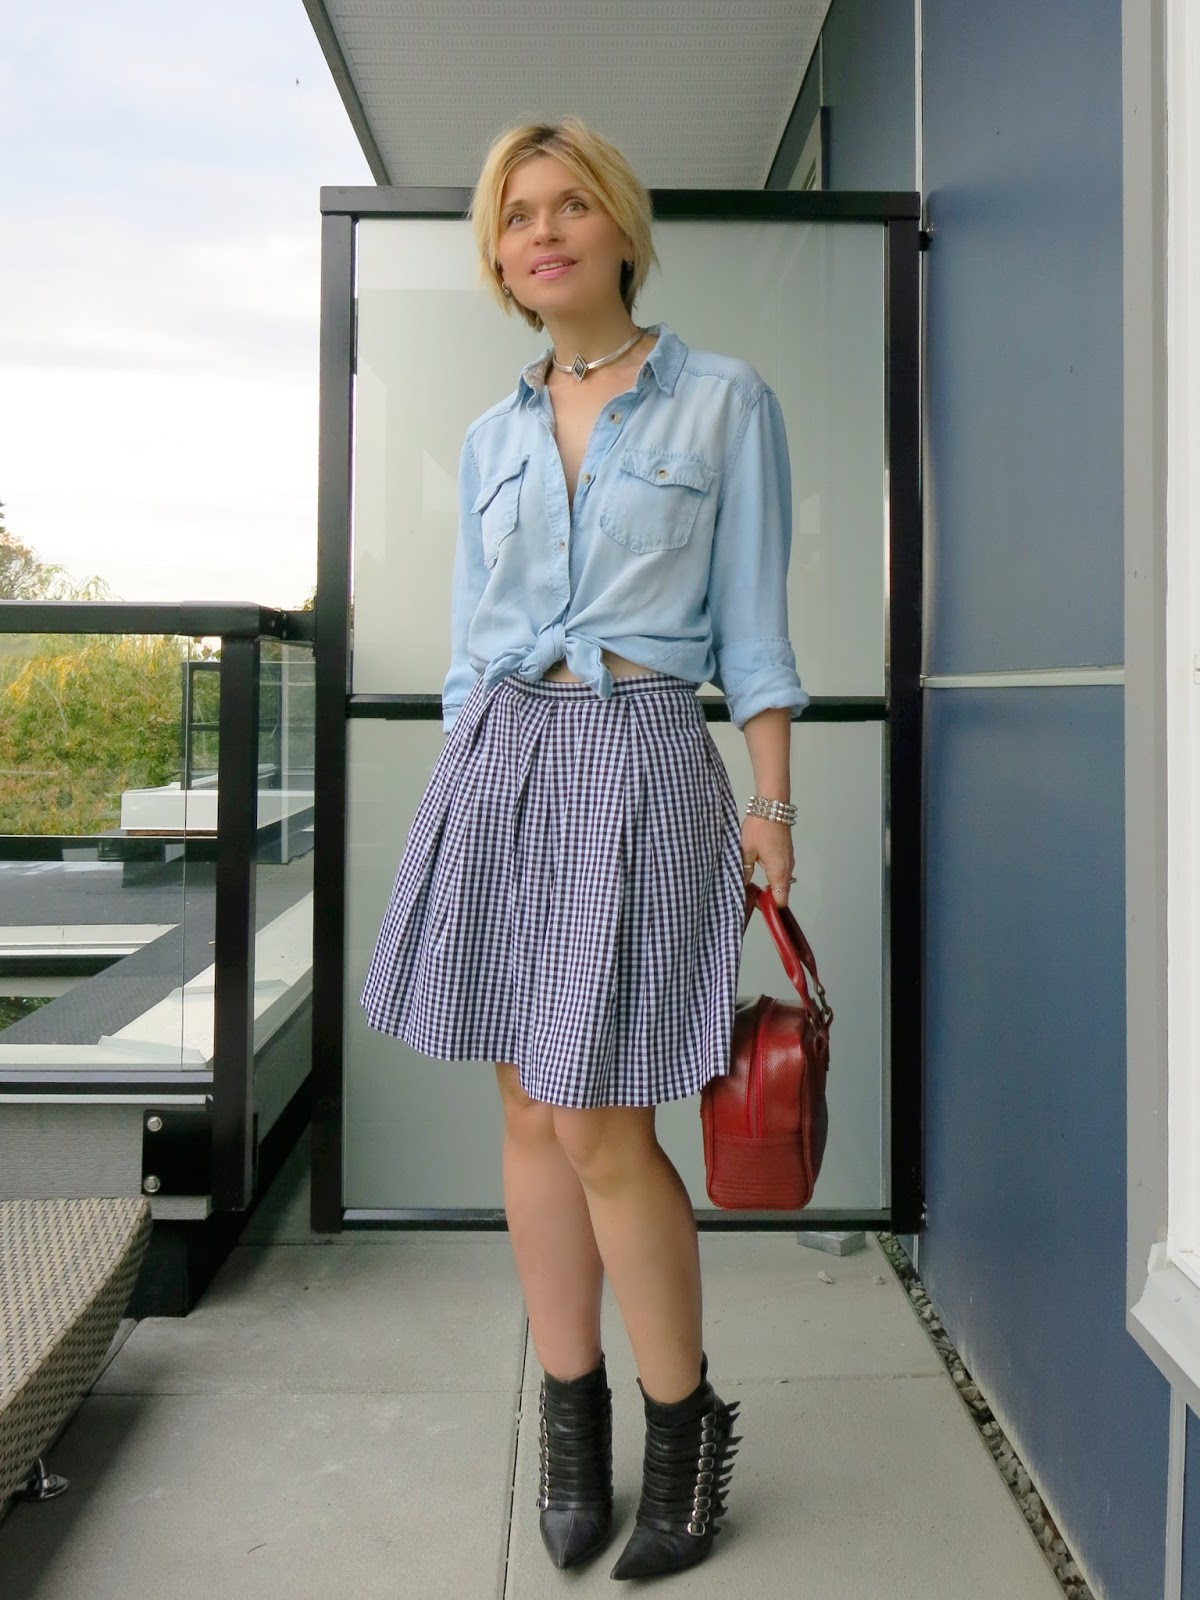 Kicking it:  gingham skirt, chambray shirt, and booties with attitude!